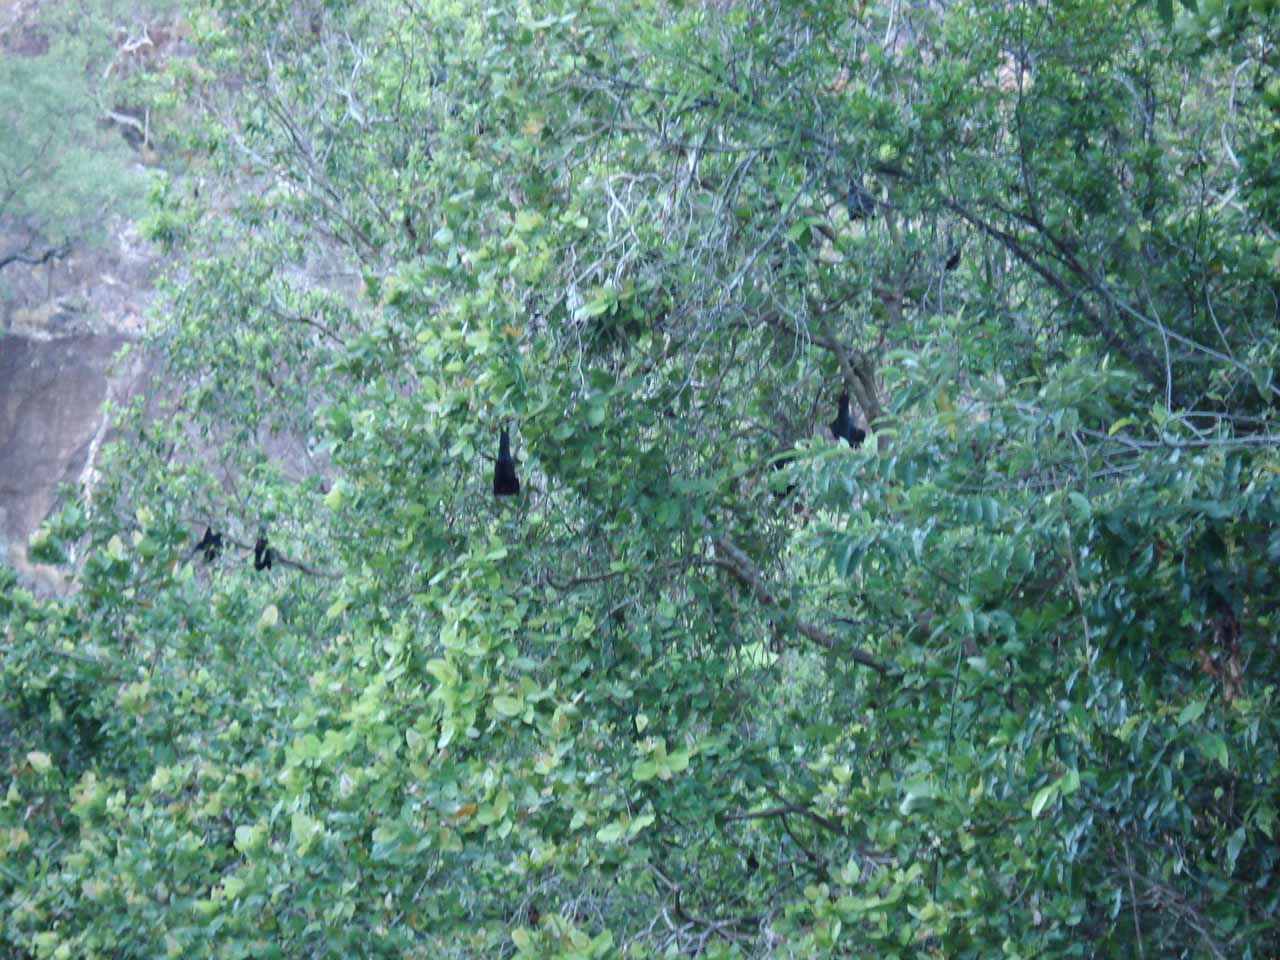 Closer look at the bats hanging from trees by Wangi Falls